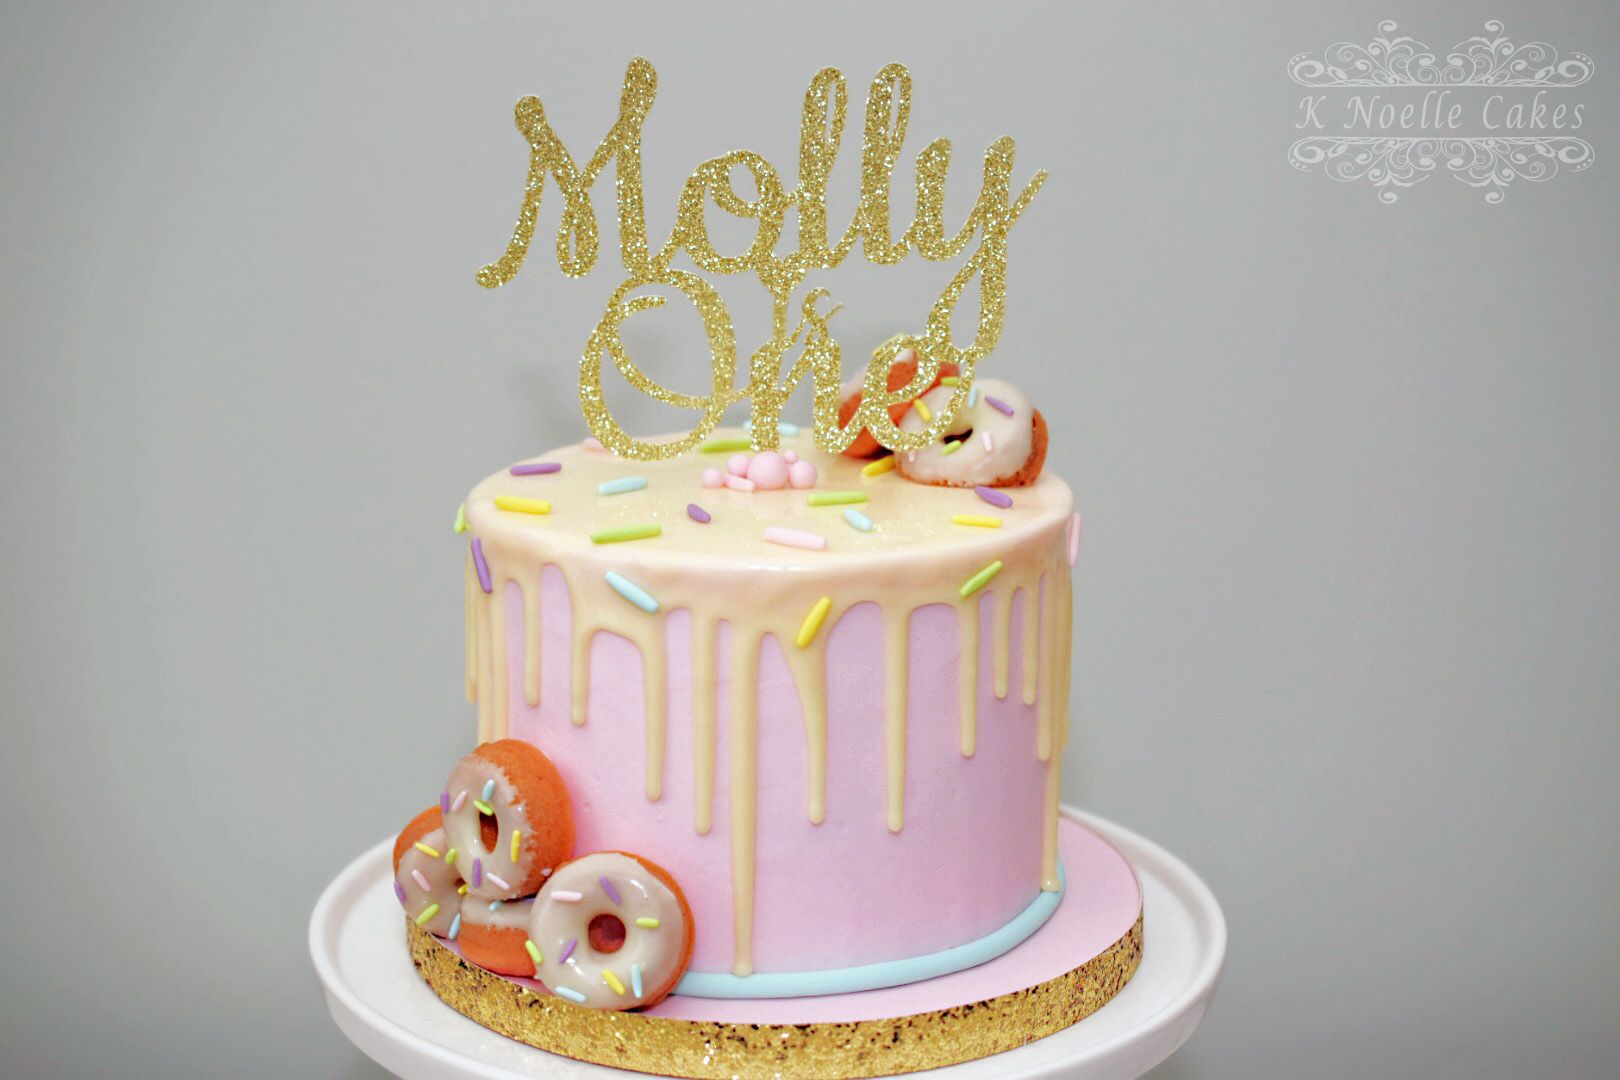 Donut Theme 1st Birthday Cake By K Noelle Cakes